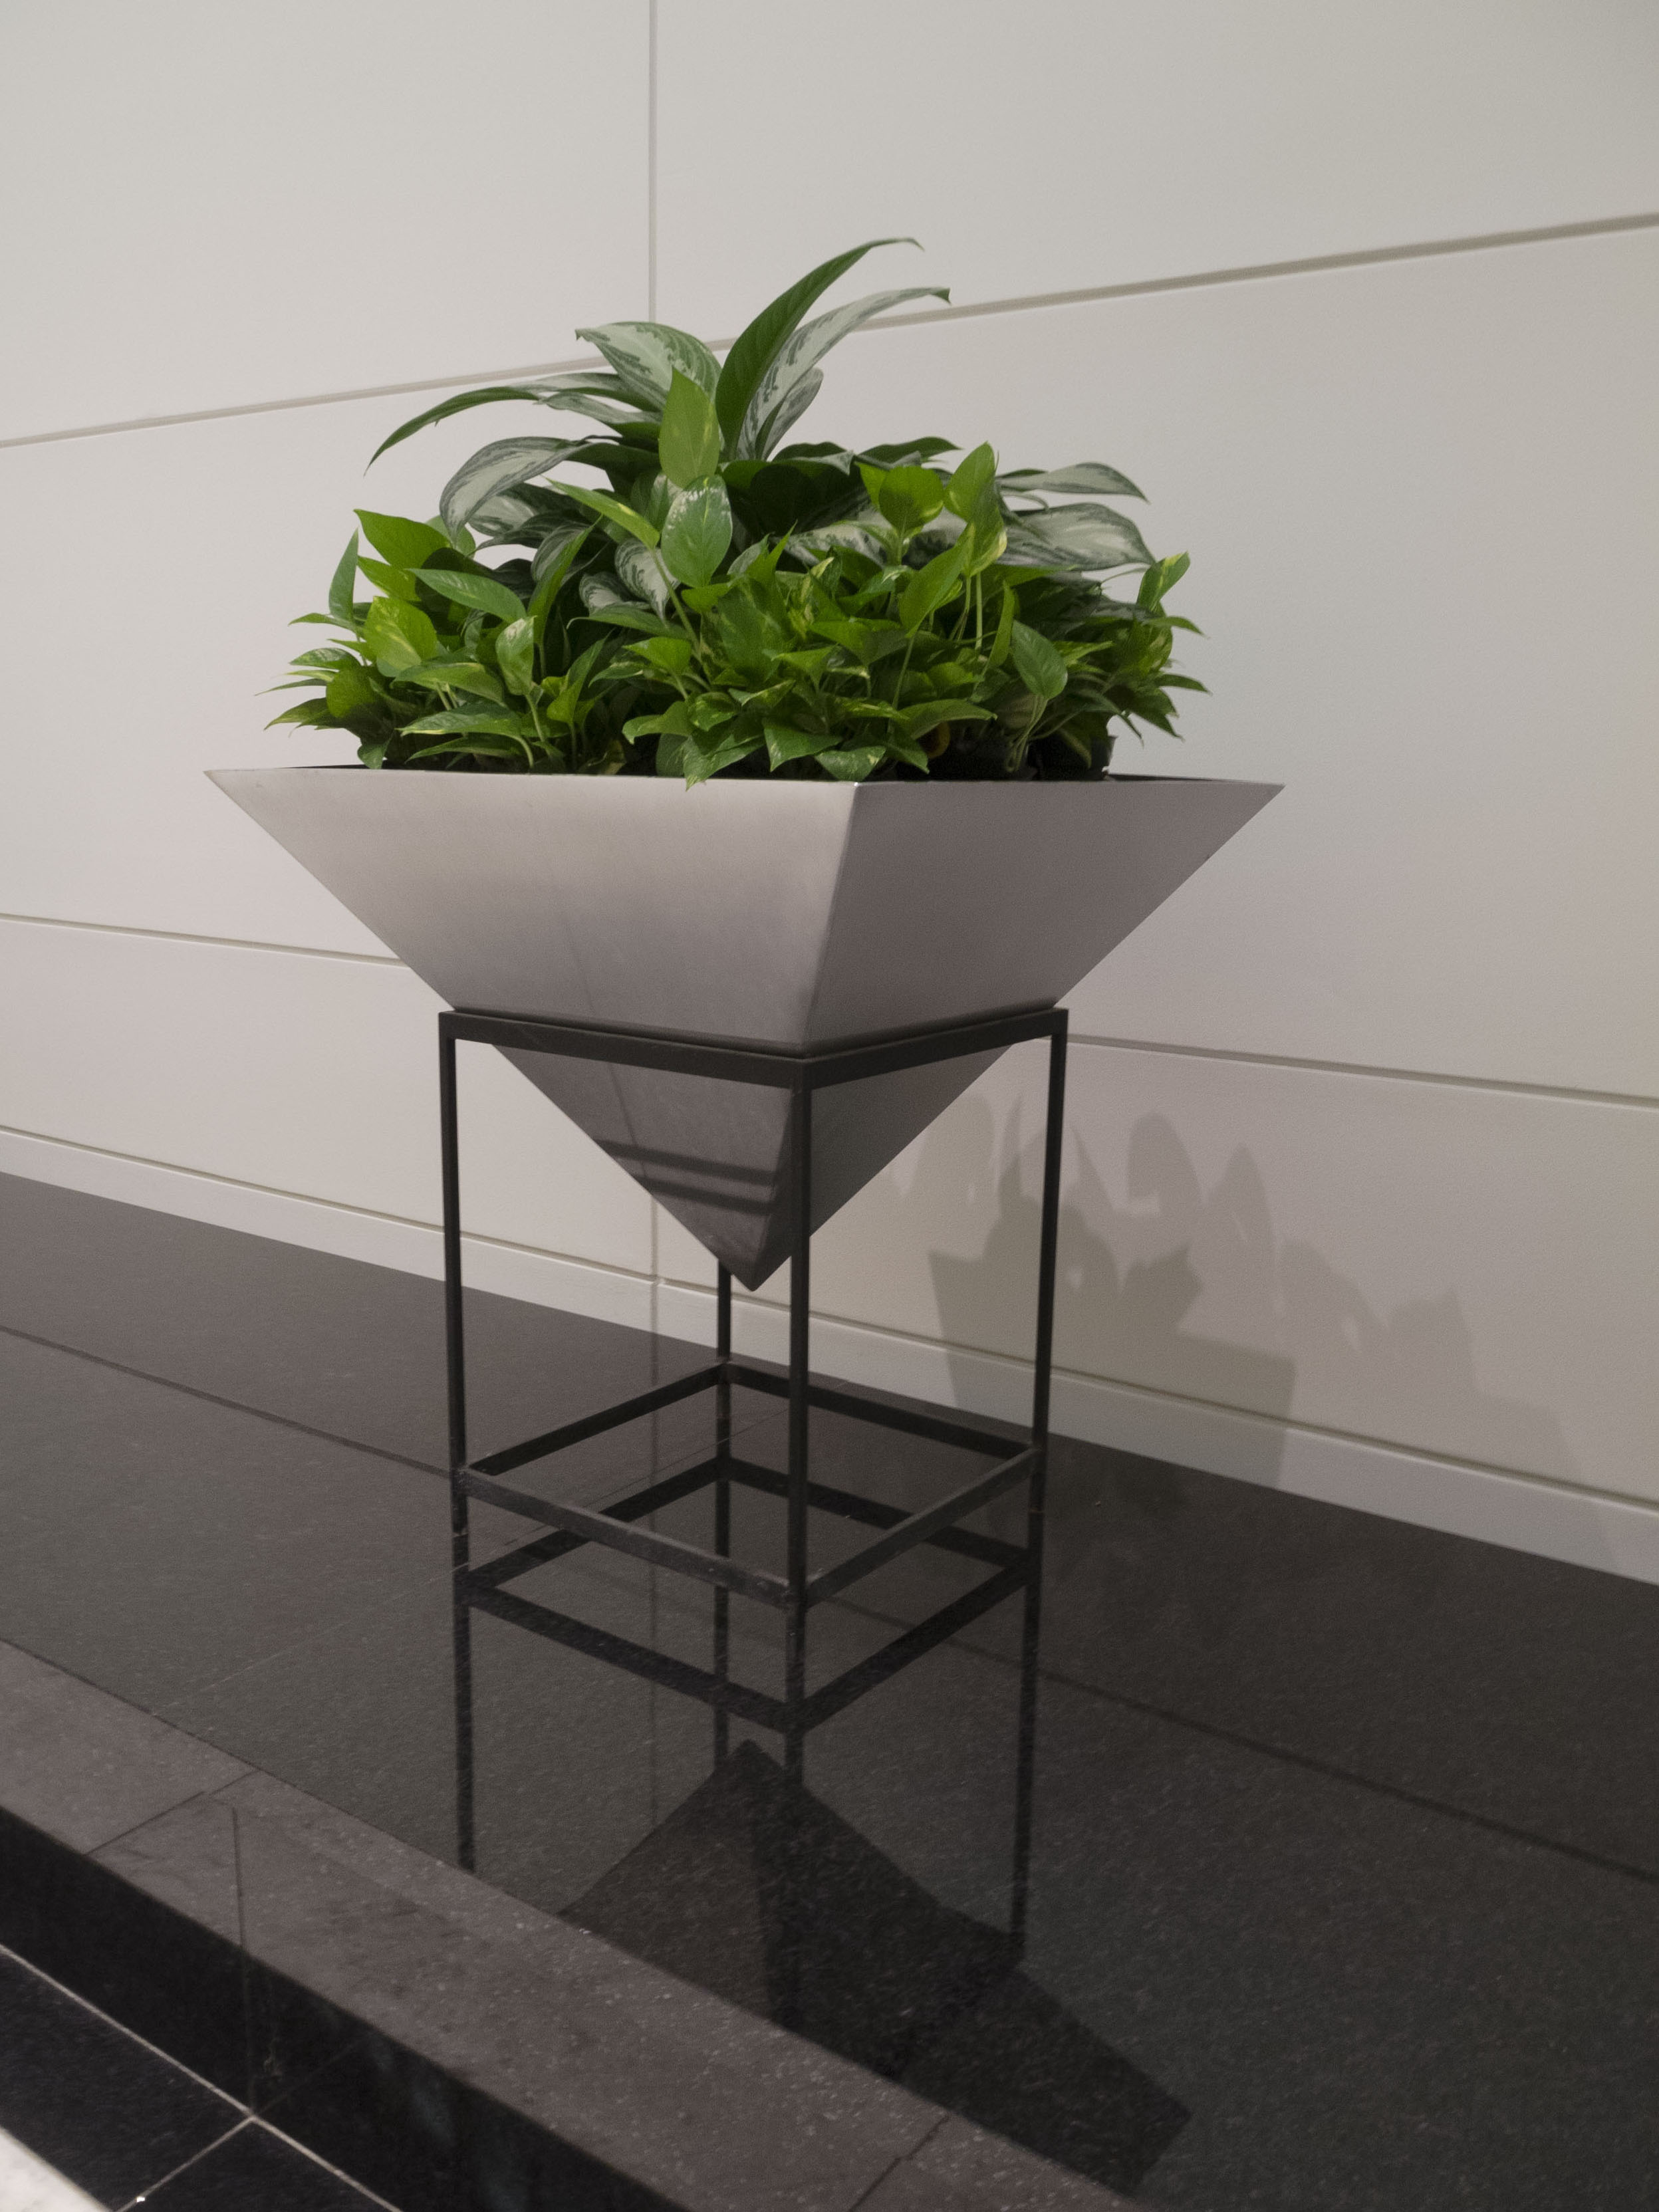 The plant connection llc - Interior plant maintenance contract ...